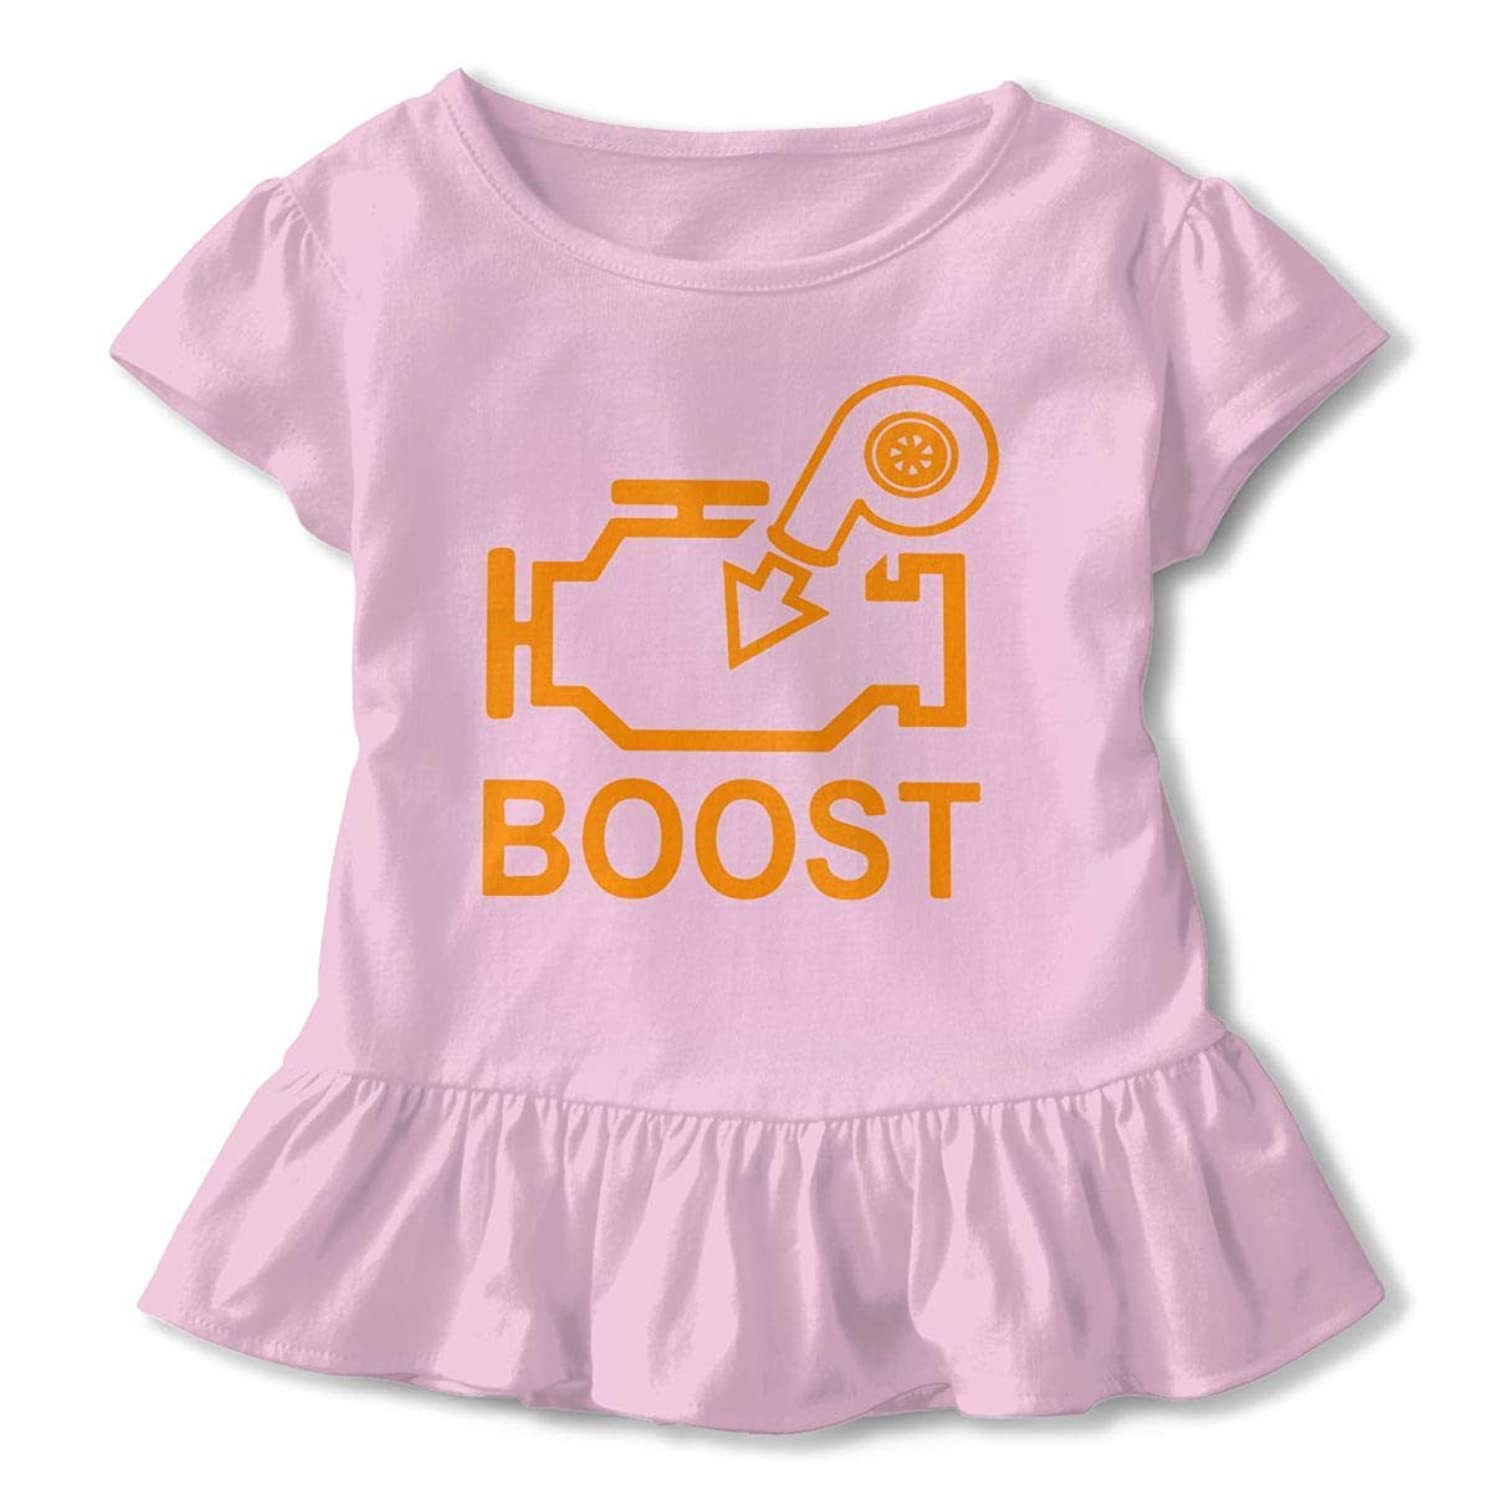 SDHEIJKY Boost Check Engine Light - Turbo Toddler Girls Ruffle T-Shirt Short-Sleeved Round Collar Clothes for 2-6T